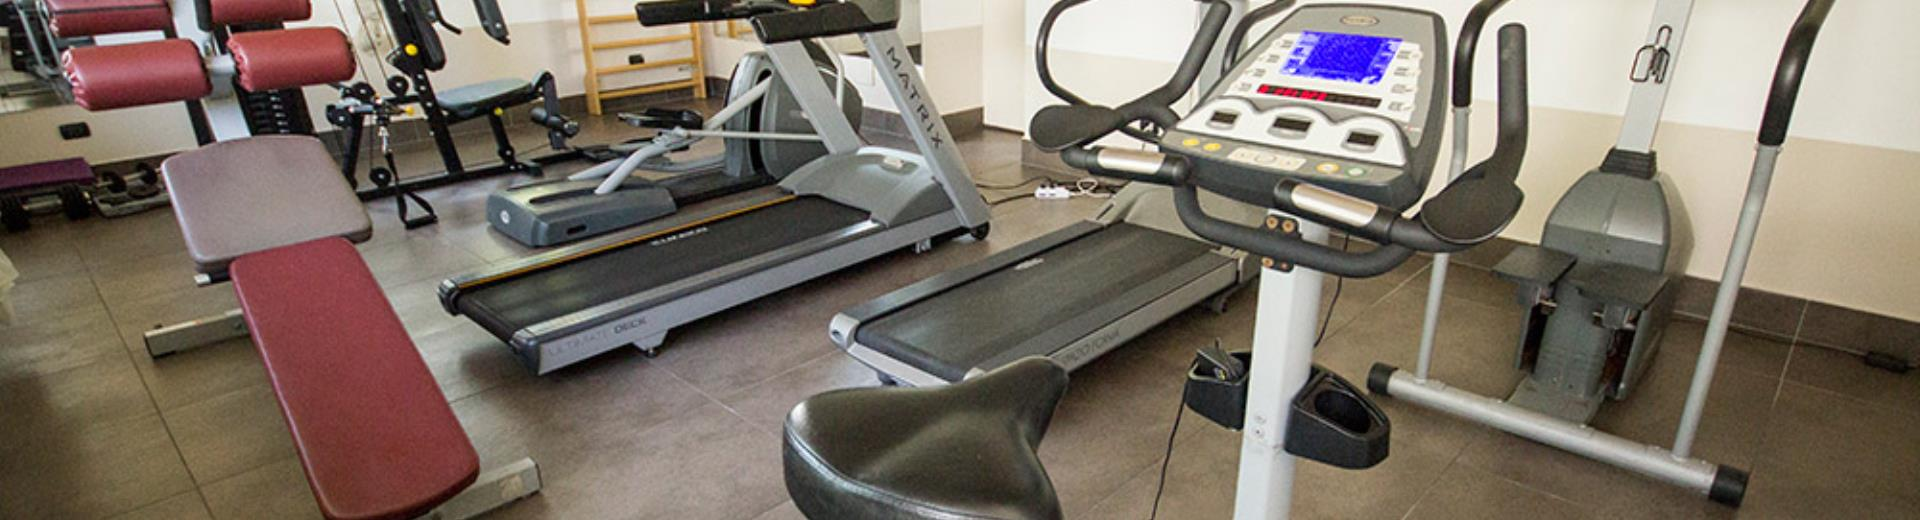 Picture of the indoor gym at the Hotel Modena Resort